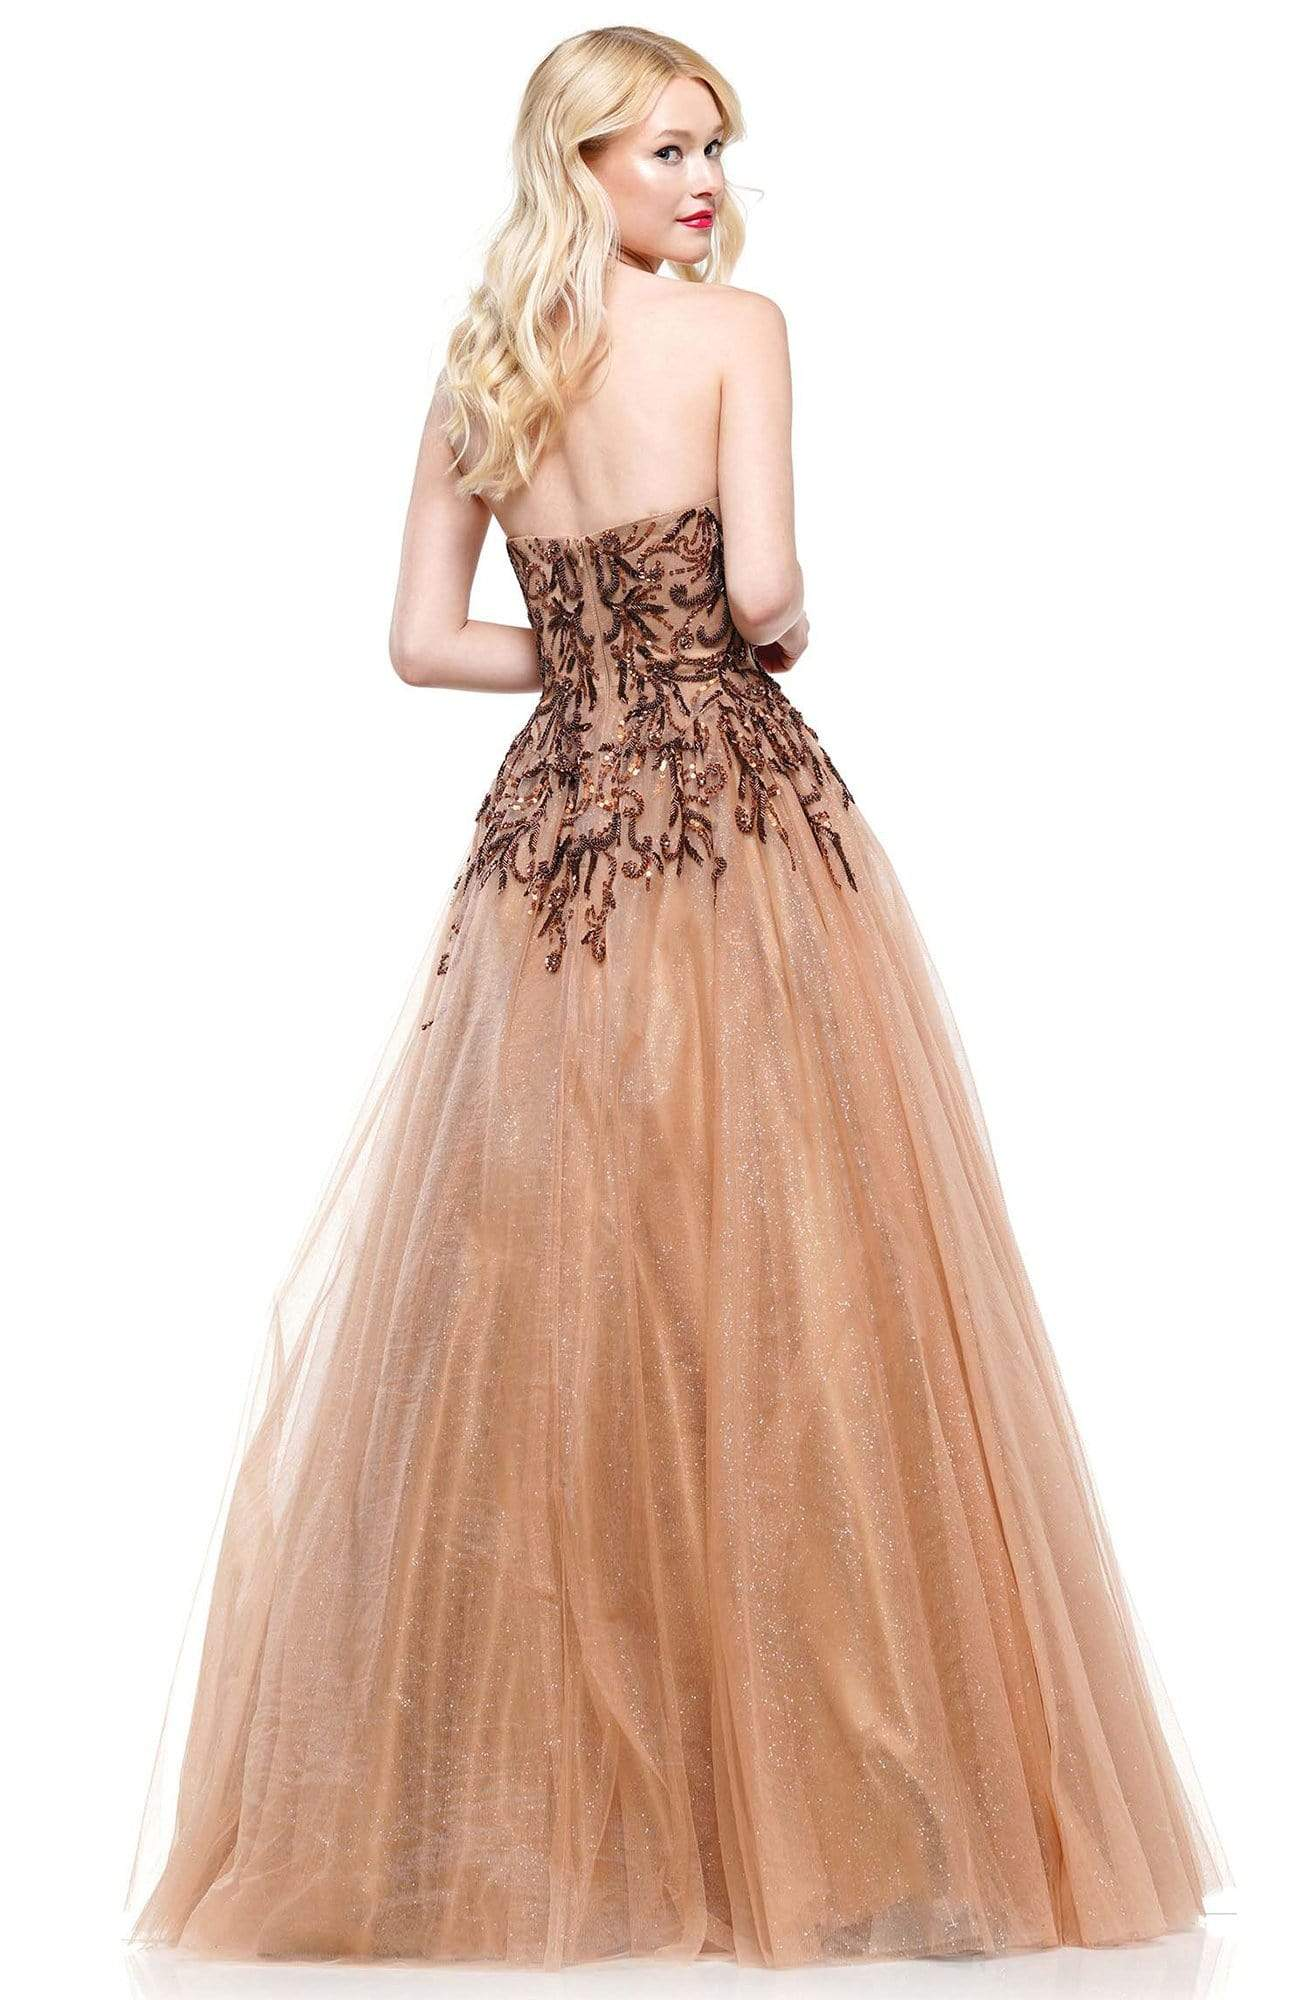 Colors Dress - 2226 Strapless Swirl-Motif Glitter Tulle Gown In Brown